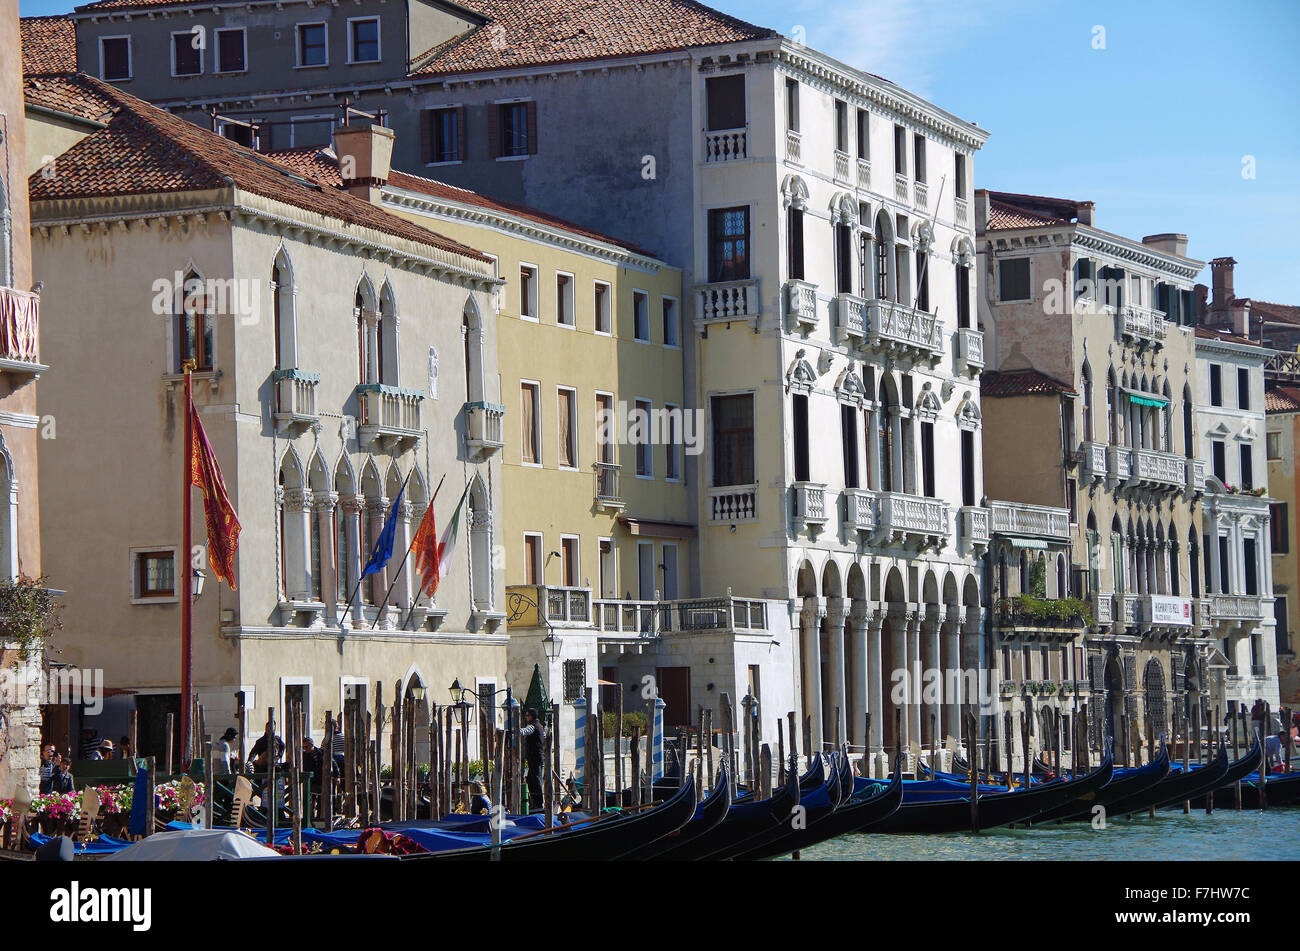 Group of Palazzi centred on the four storey Palazzo Michiel Della Colonne, on the Grand Canal in Venice, Italy. - Stock Image